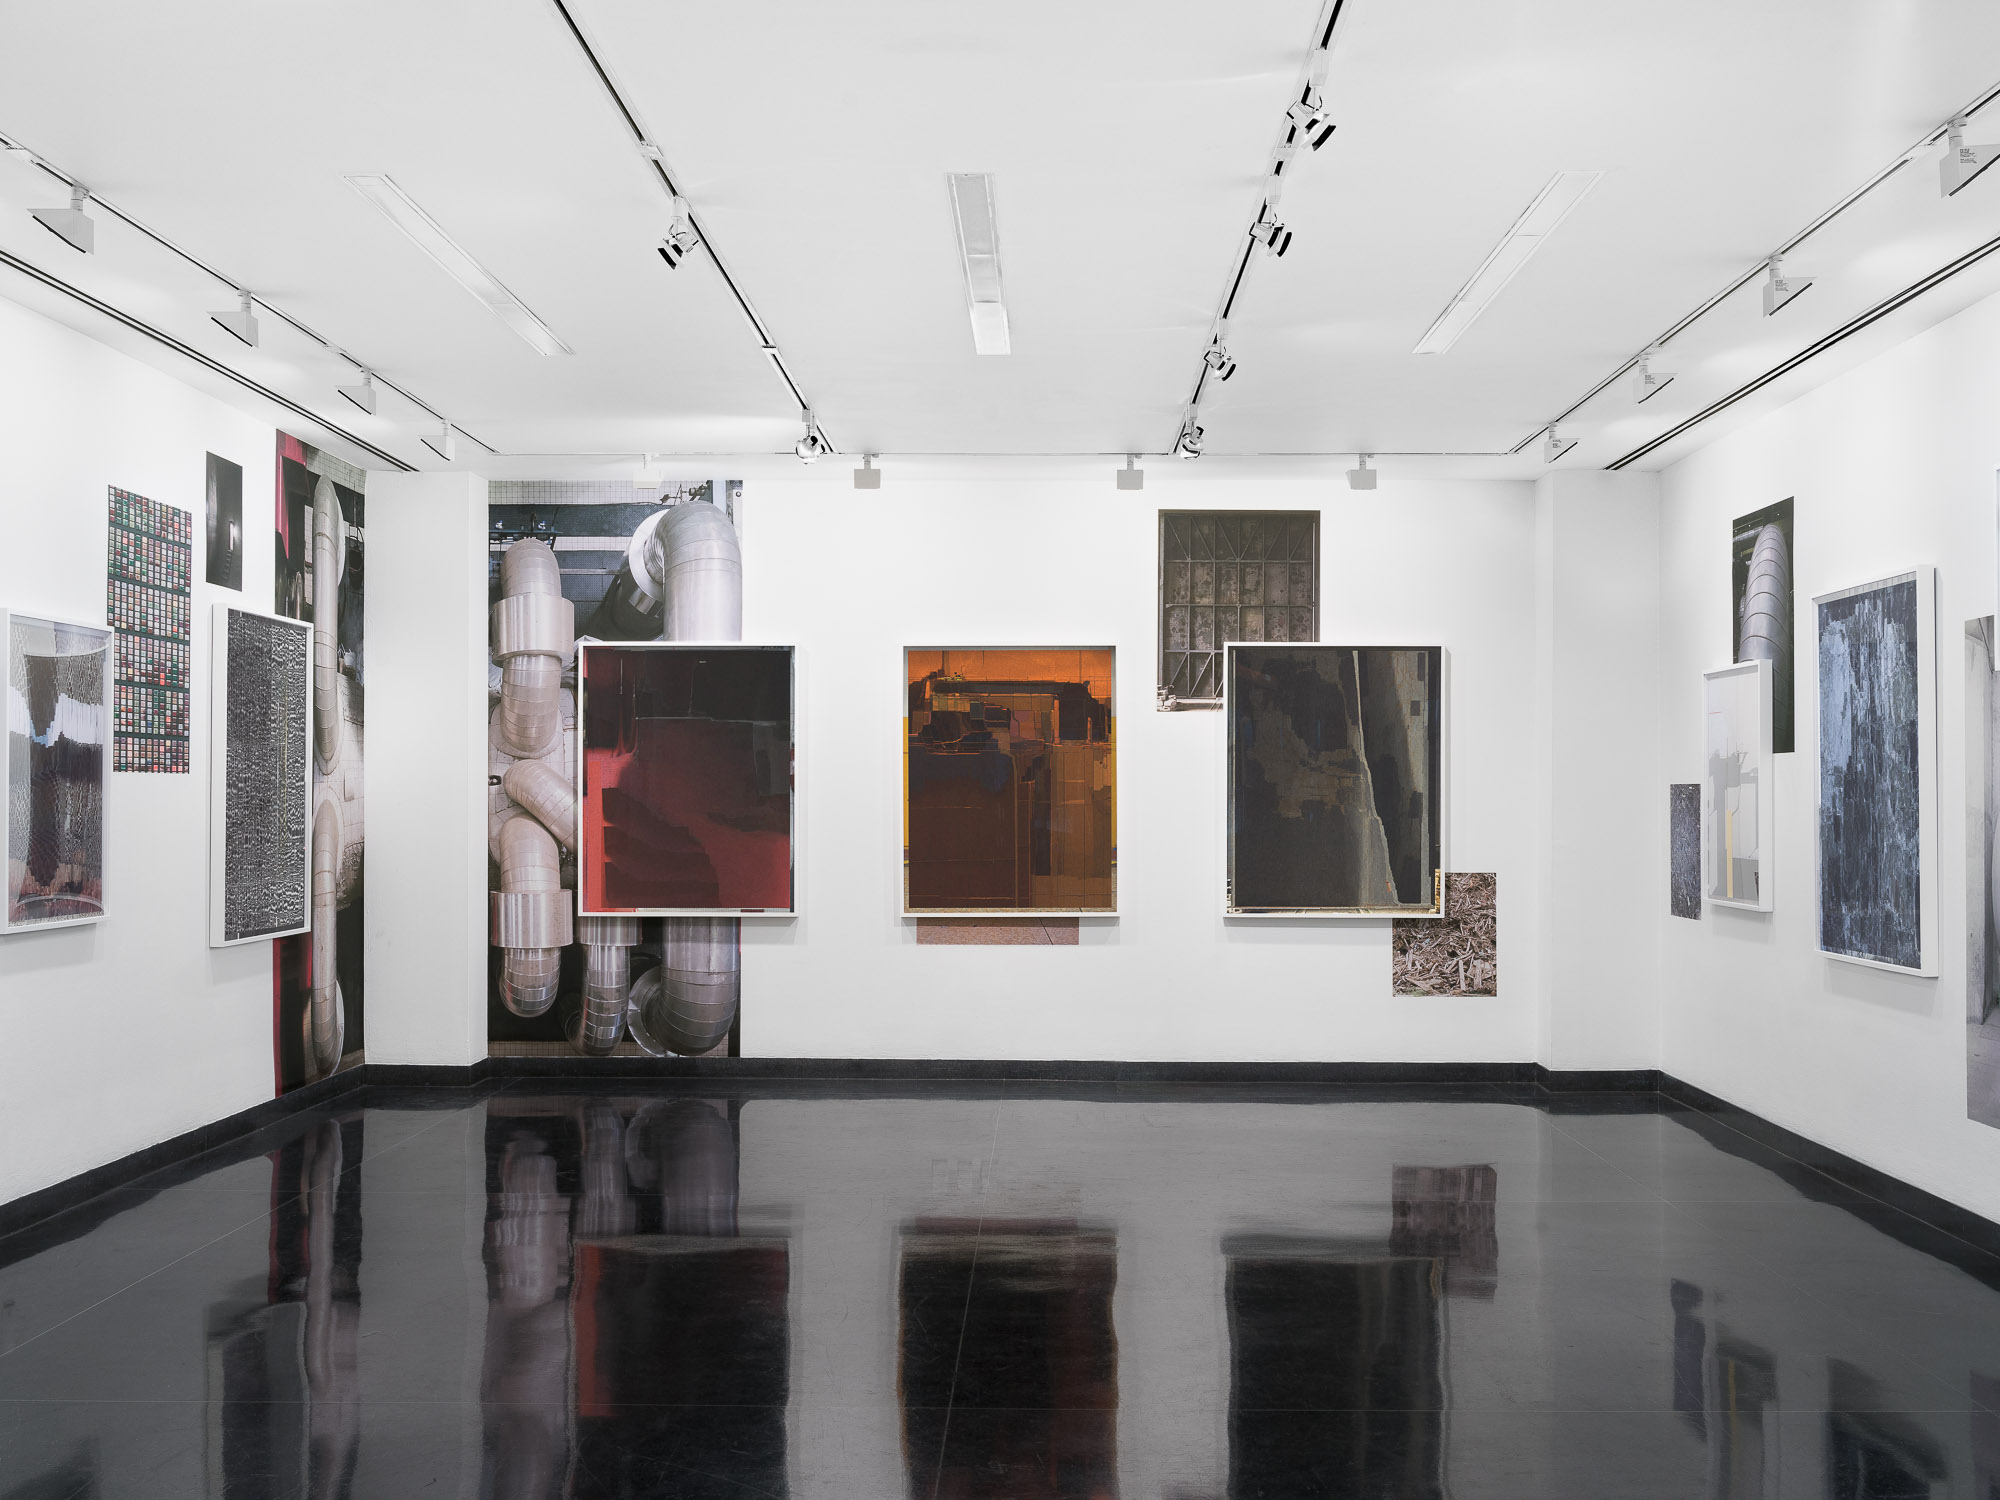 Exhibition view from Transform : Power, French institute Alliance Française FIAF, New York City, September 2016